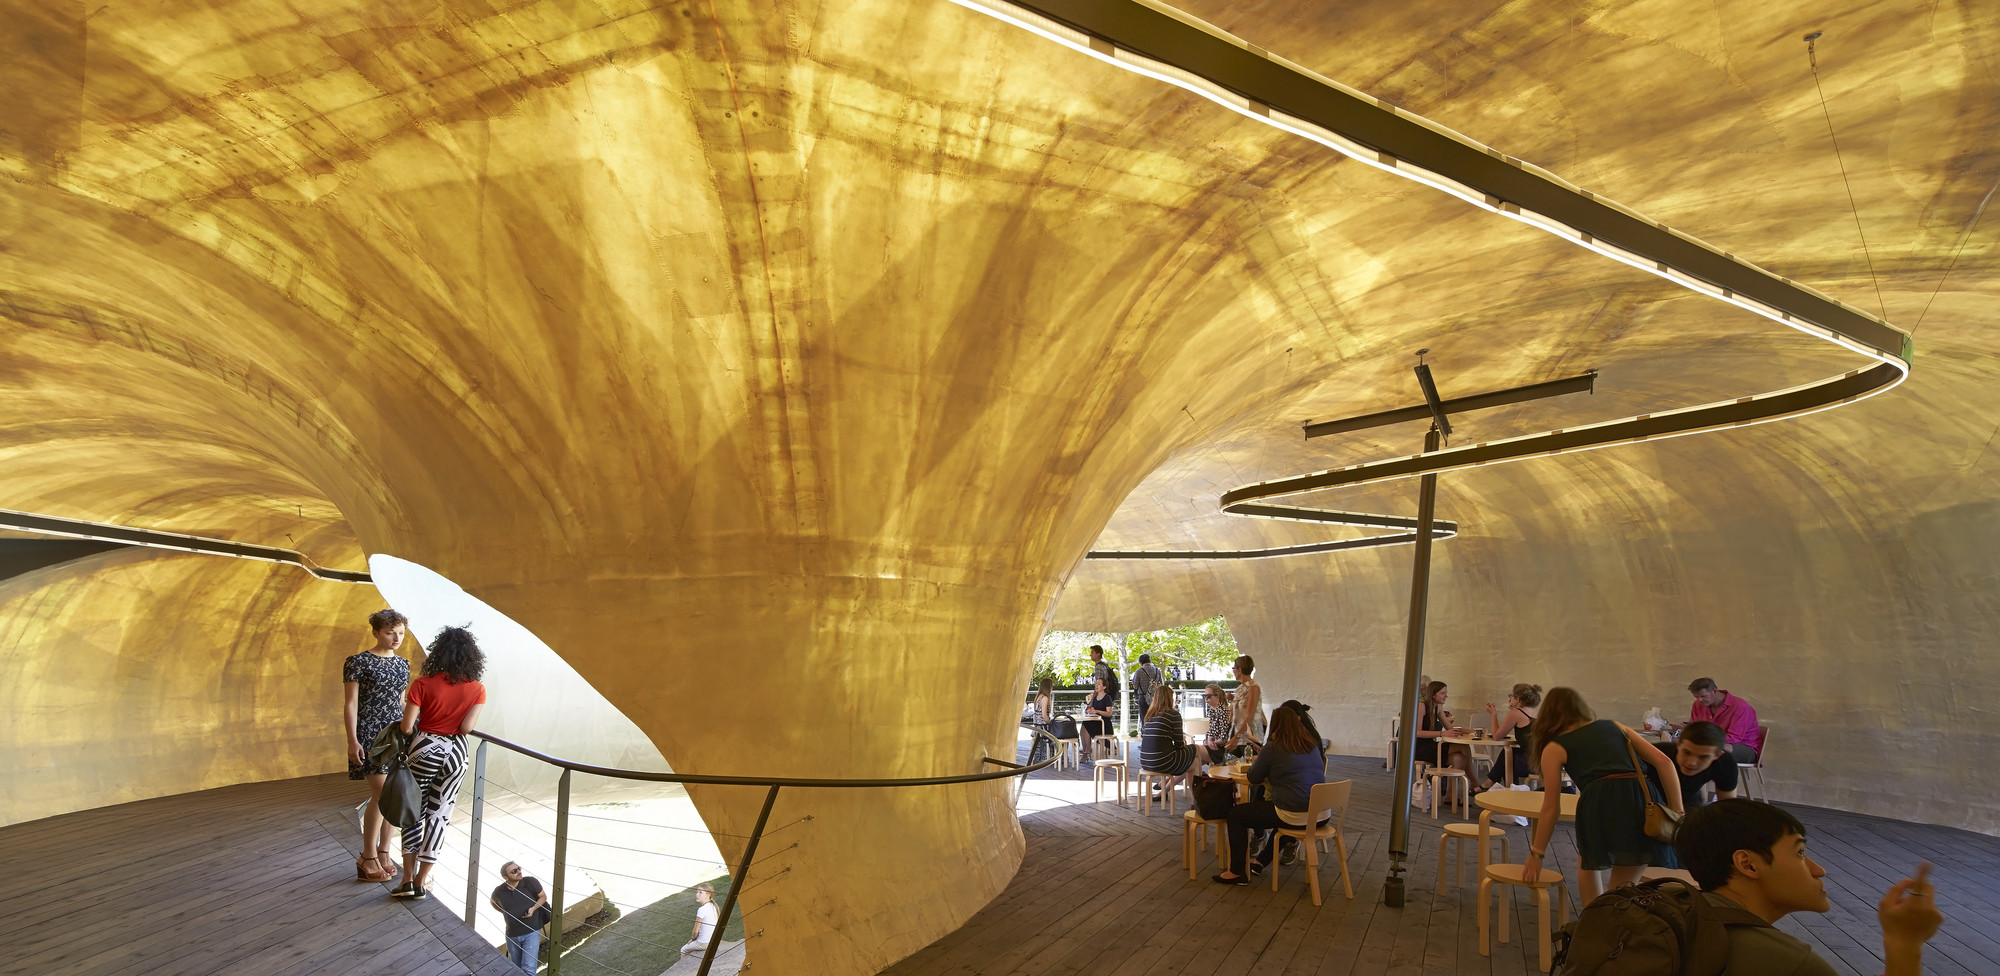 Smiljan Radic's Serpentine Pavilion / Images by Hufton+Crow, © Hufton+Crow